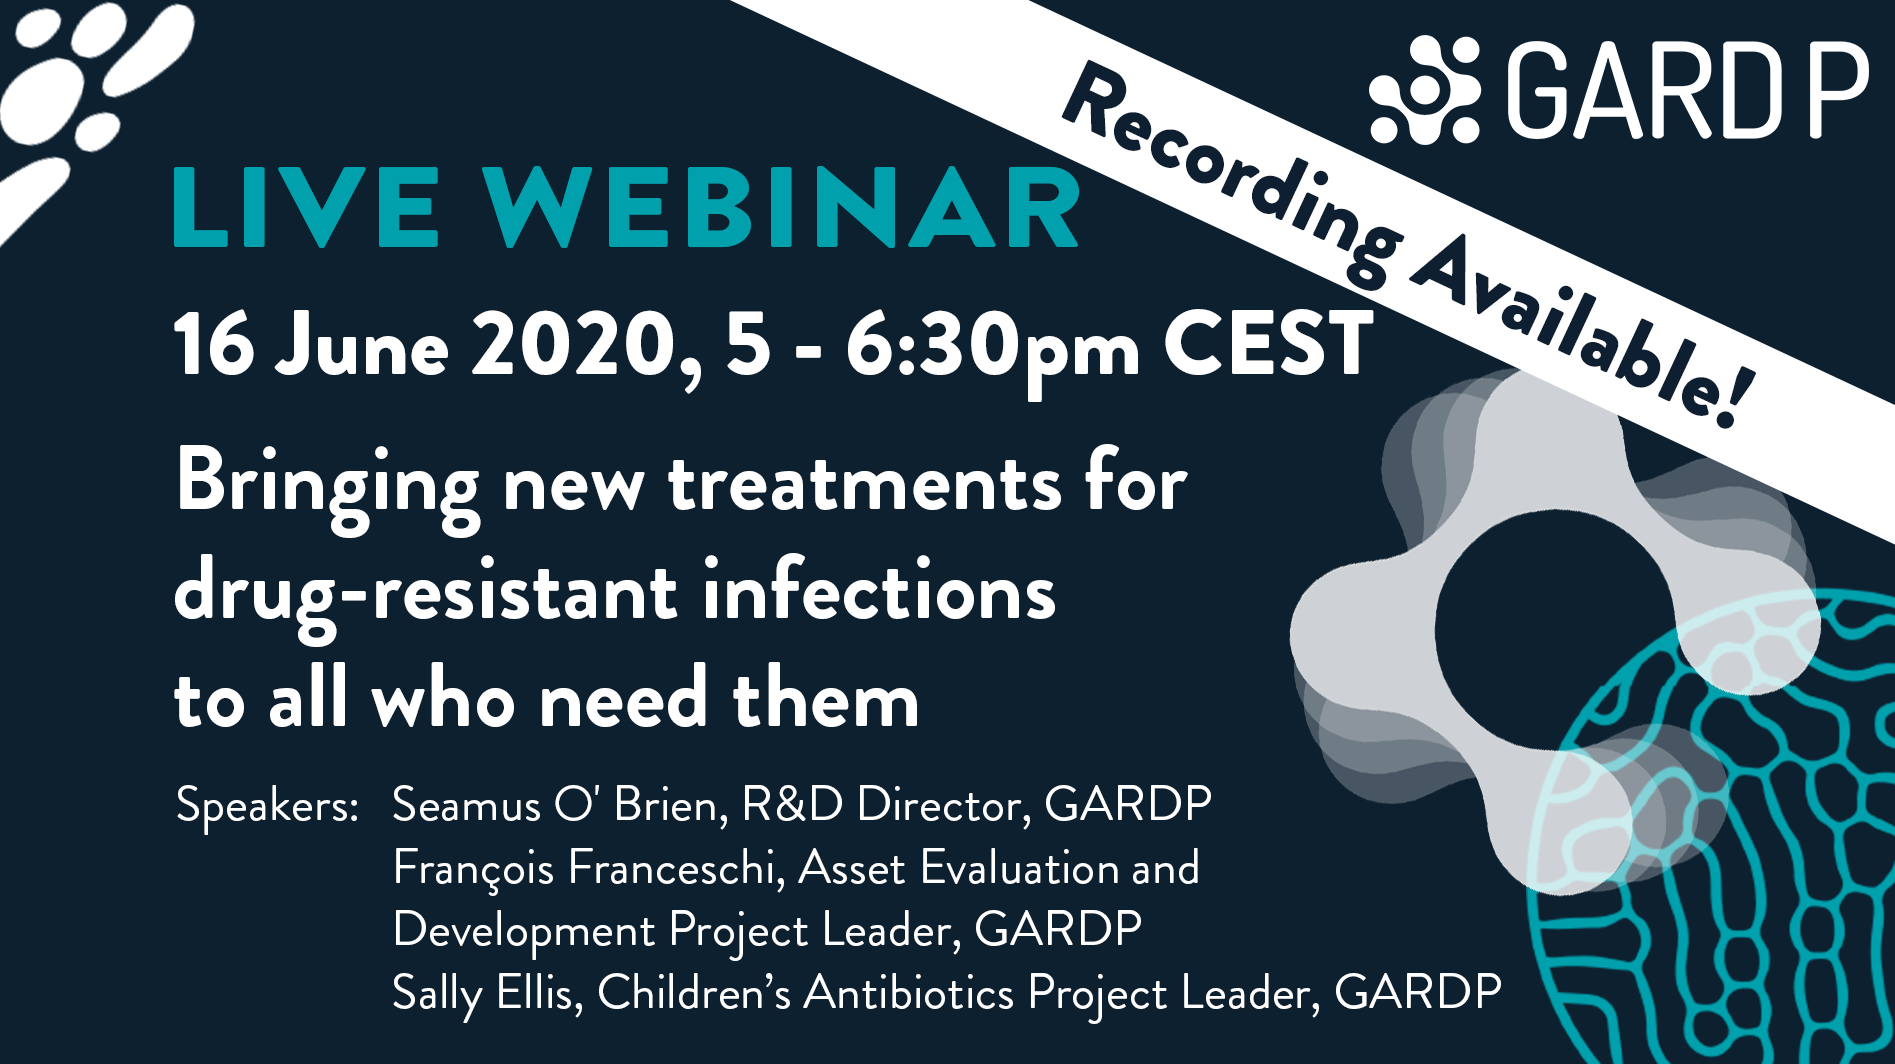 GARDP: Bringing new treatments for drug-resistant infections to all who need them